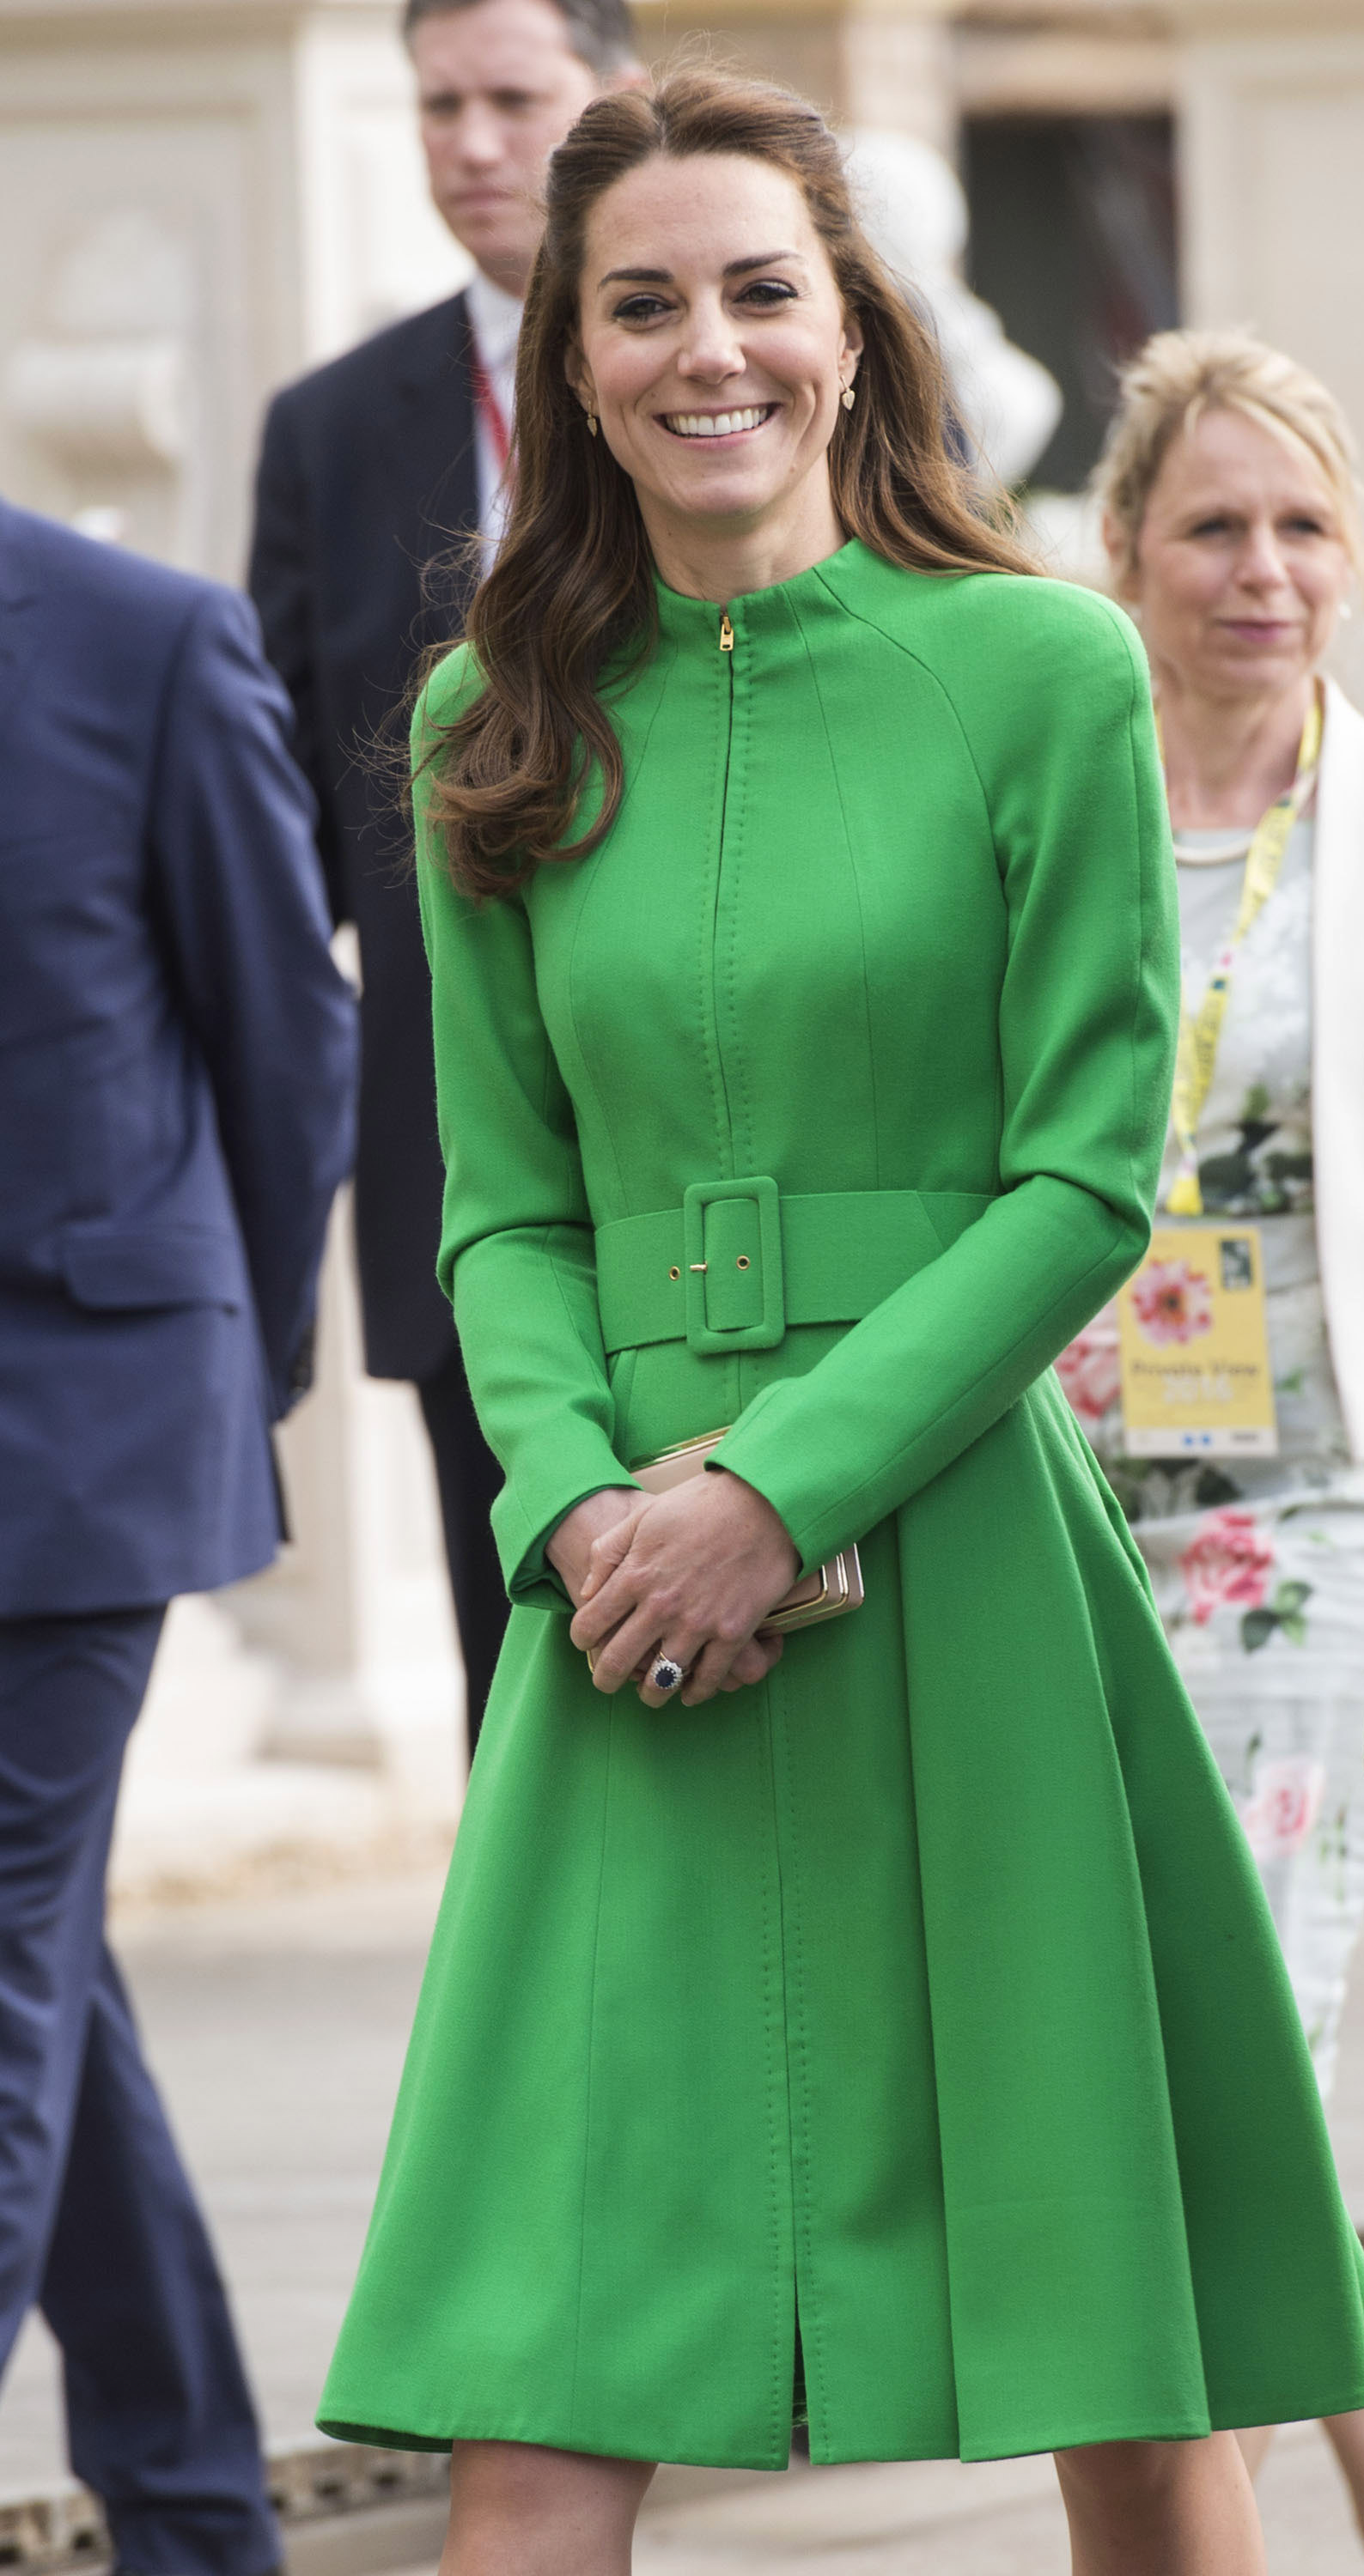 LONDON, ENGLAND - MAY 23:  Catherine, Duchess of Cambridge attends Chelsea Flower Show press day at Royal Hospital Chelsea on May 23, 2016 in London, England. The prestigious gardening show features hundreds of stands and exhibition gardens.  (Photo by Mark Cuthbert/UK Press via Getty Images)